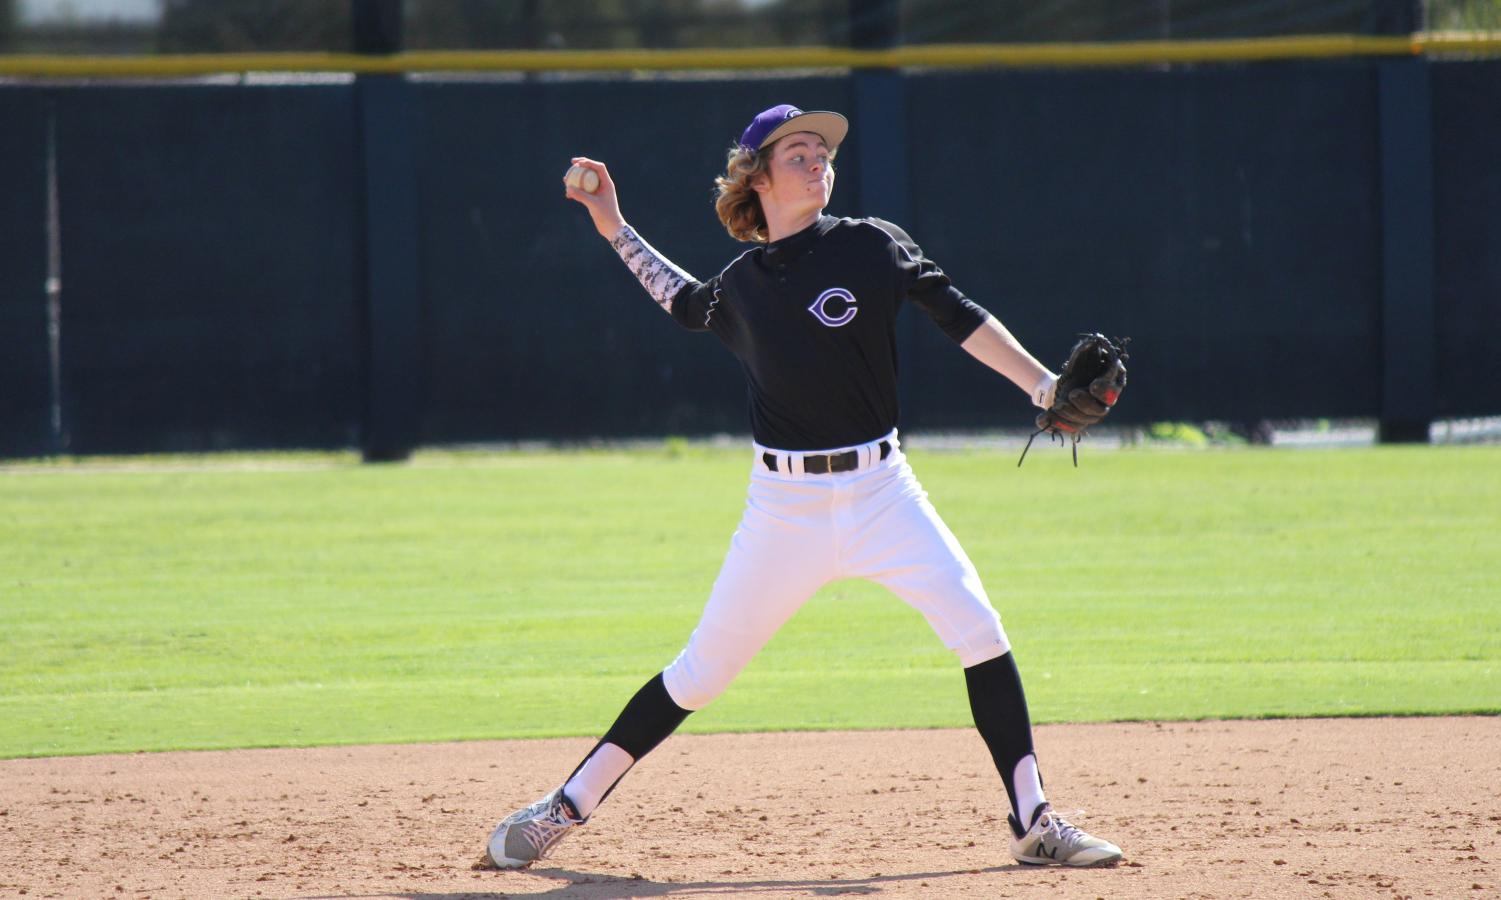 Freshman Konrad Bohnert throws the ball to first base in hopes for an out. The JV team played Rancho Bernardo and lost six to four.